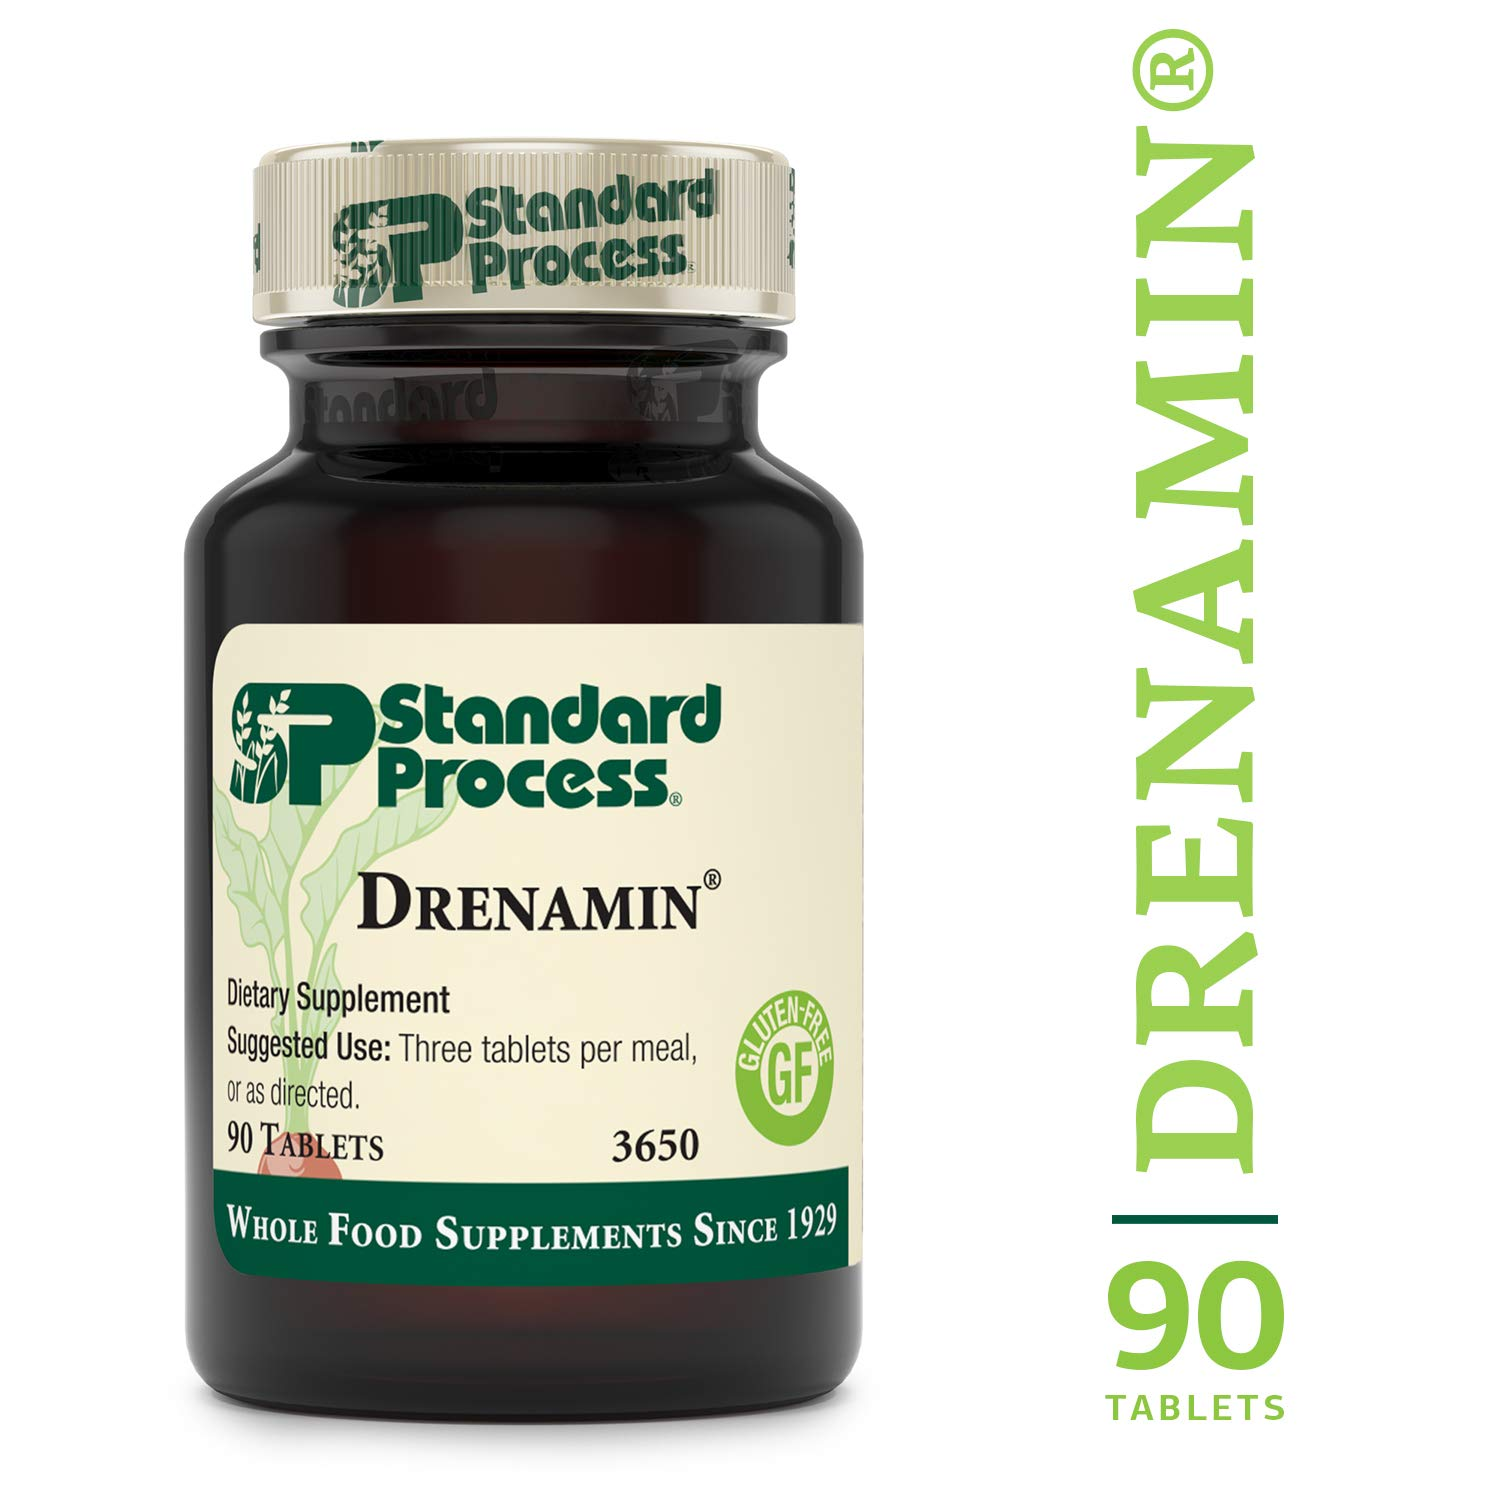 Standard Process - Drenamin - Supports Immune System Function, Energy Production, and Balanced Mood, Source of Antioxidant Vitamin C, Riboflavin, Niacin, and Vitamin B6, Gluten Free - 90 Tablets by Standard Process